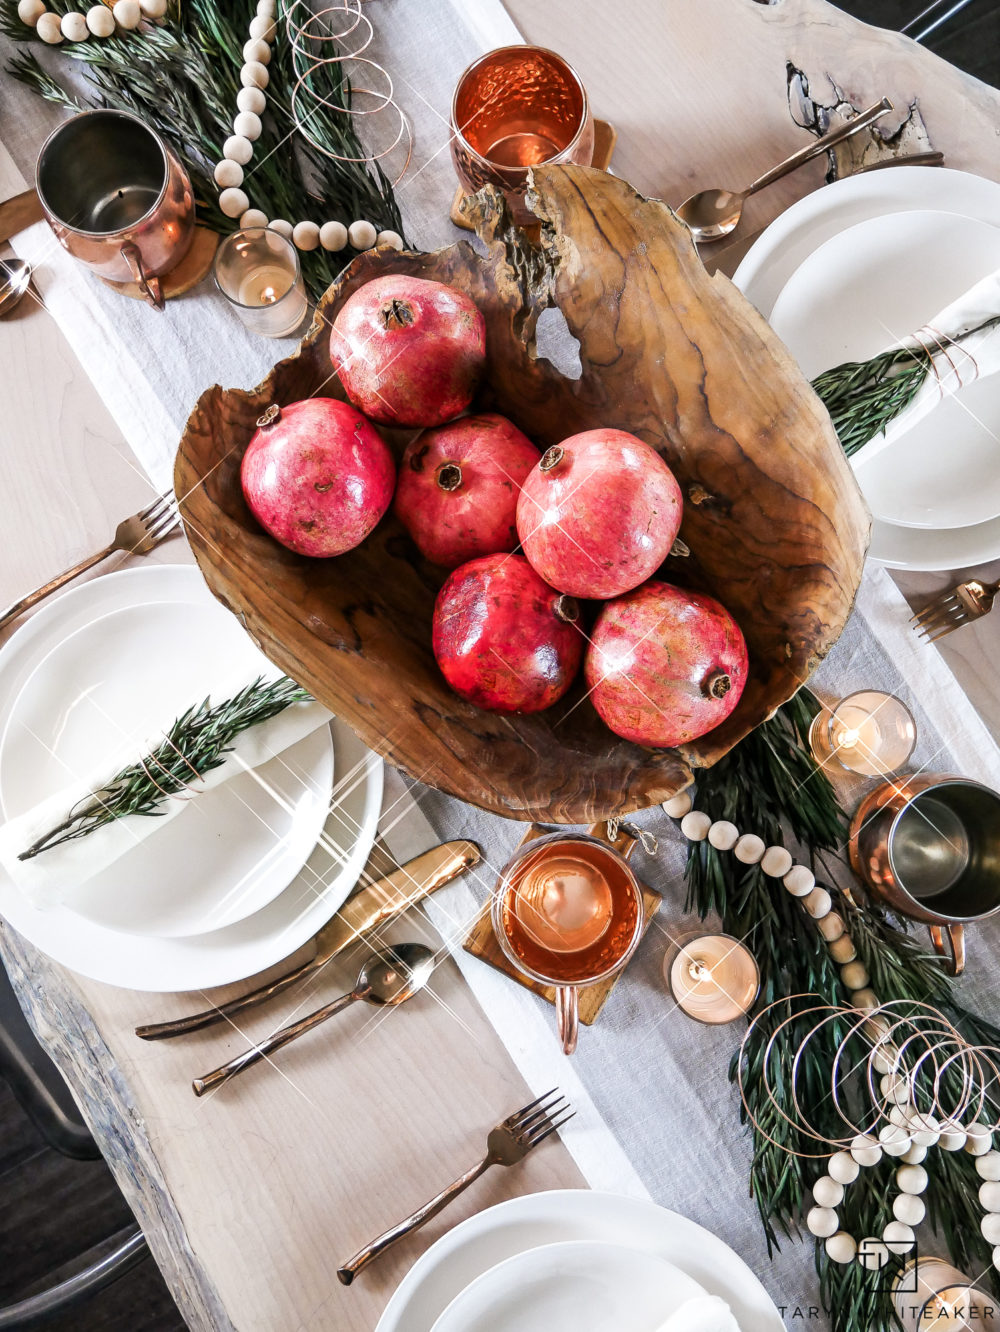 Keep your centerpiece simple by using a unique bowl and filling it with fresh fruit or vegetables that are in season. Love this pomegranate centerpiece mixed with the fresh greens.